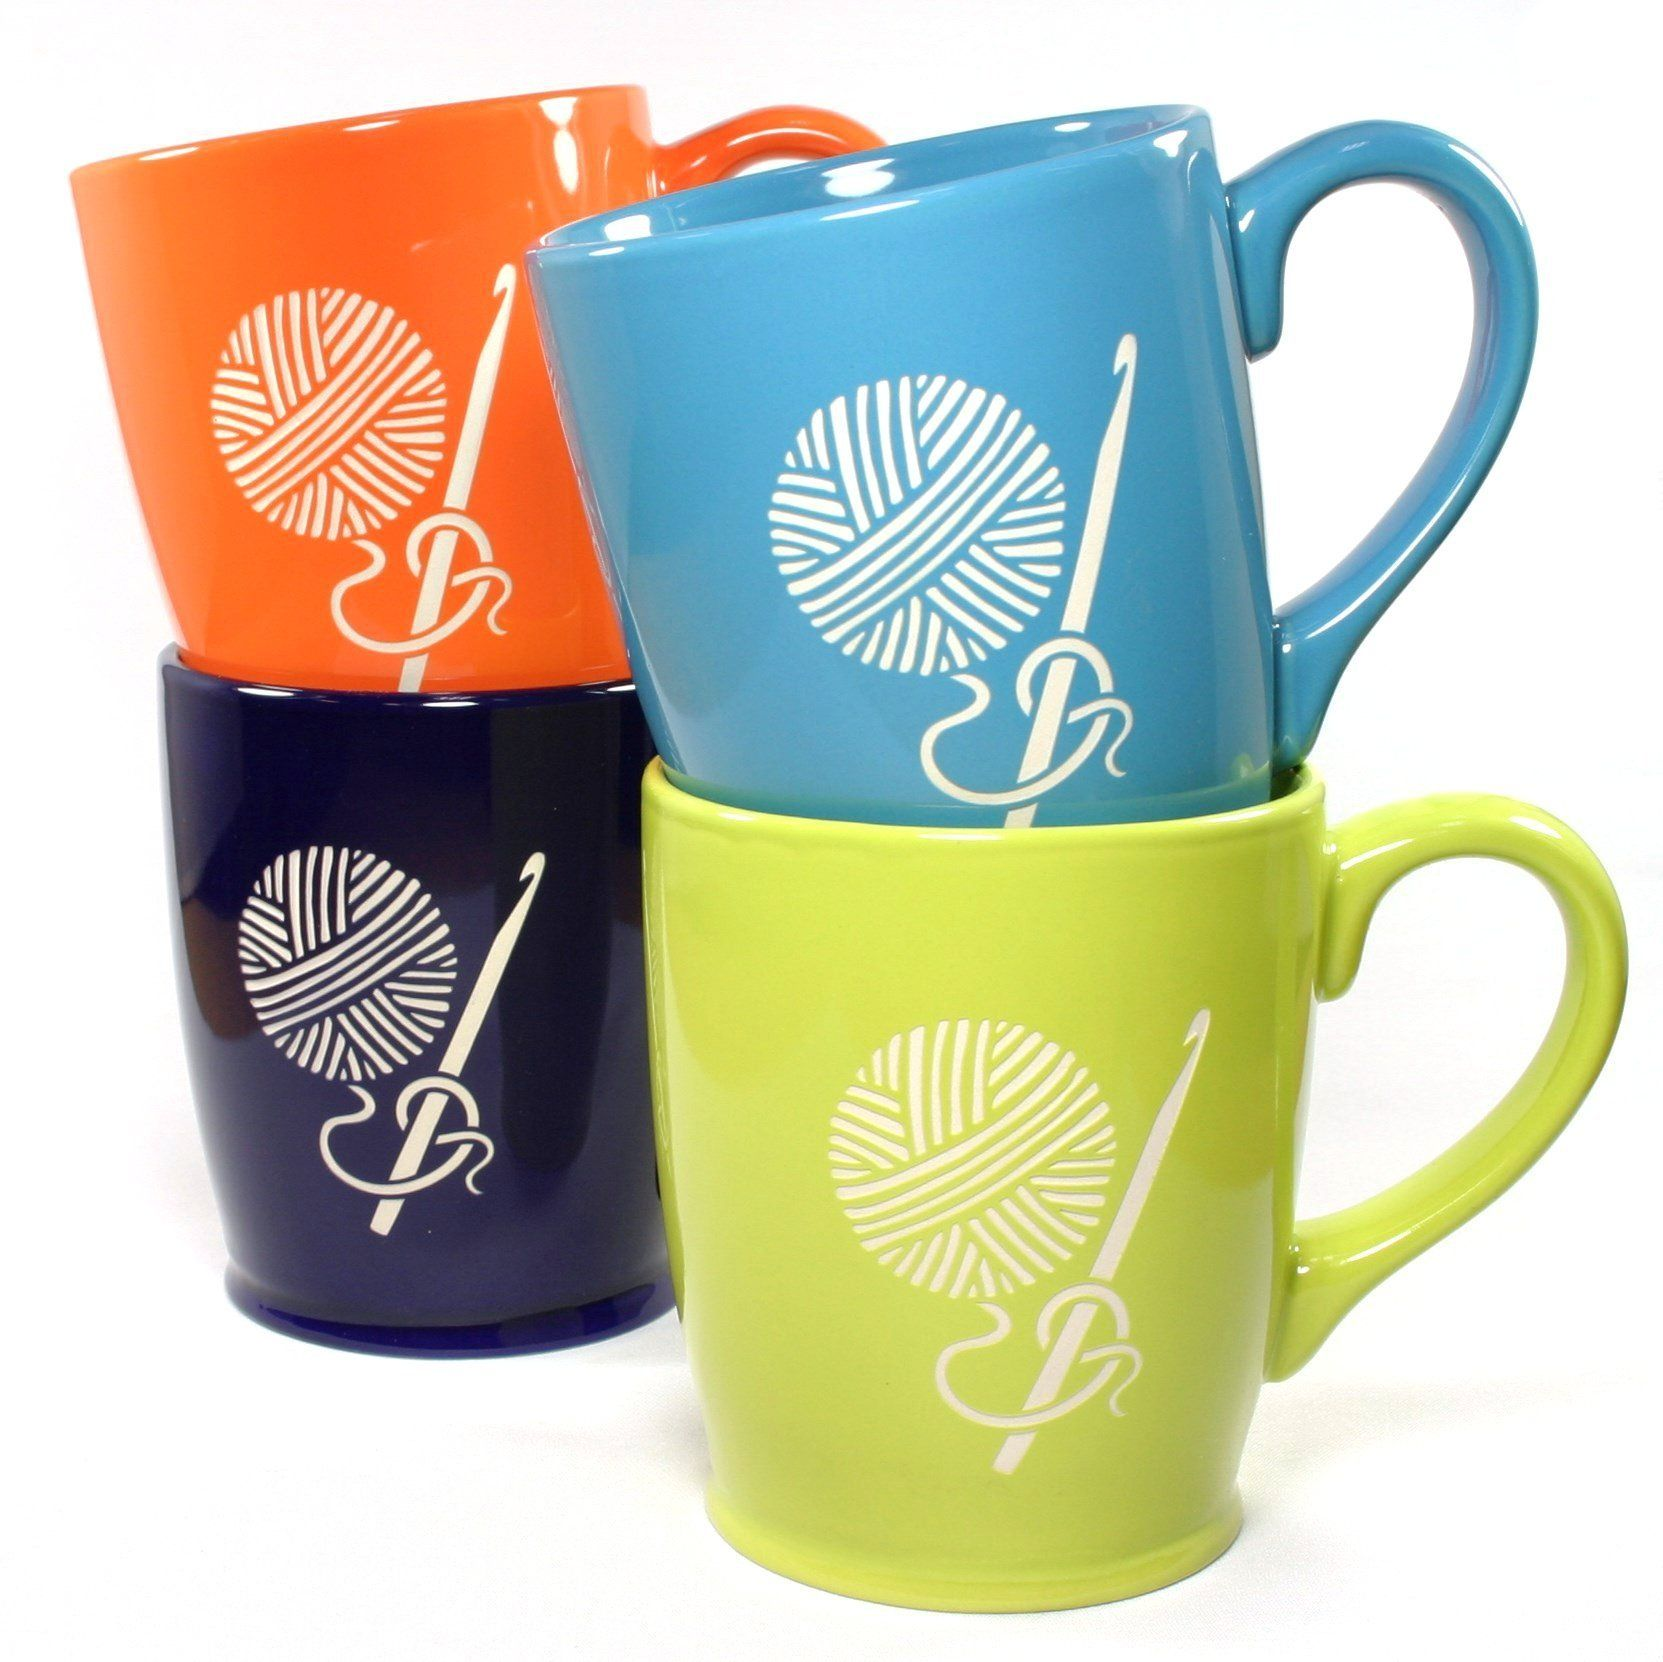 CROCHET HOOK Mugs - Set of 4 Colors - 16oz Dishwasher-Safe Sandblasted Ceramic. Crocheting and drinking coffee or tea is the perfect afternoon. Microwave-safe and dishwasher-safe. We carved all the way through the bright, colorful glazes of these extra large DESIGN mugs so that the bold natural stoneware ceramic can be seen. You'll get one each of the 4 colors shown (sky blue, navy blue, tangerine orange, chartreuse green). Engraving will never wear or stain.